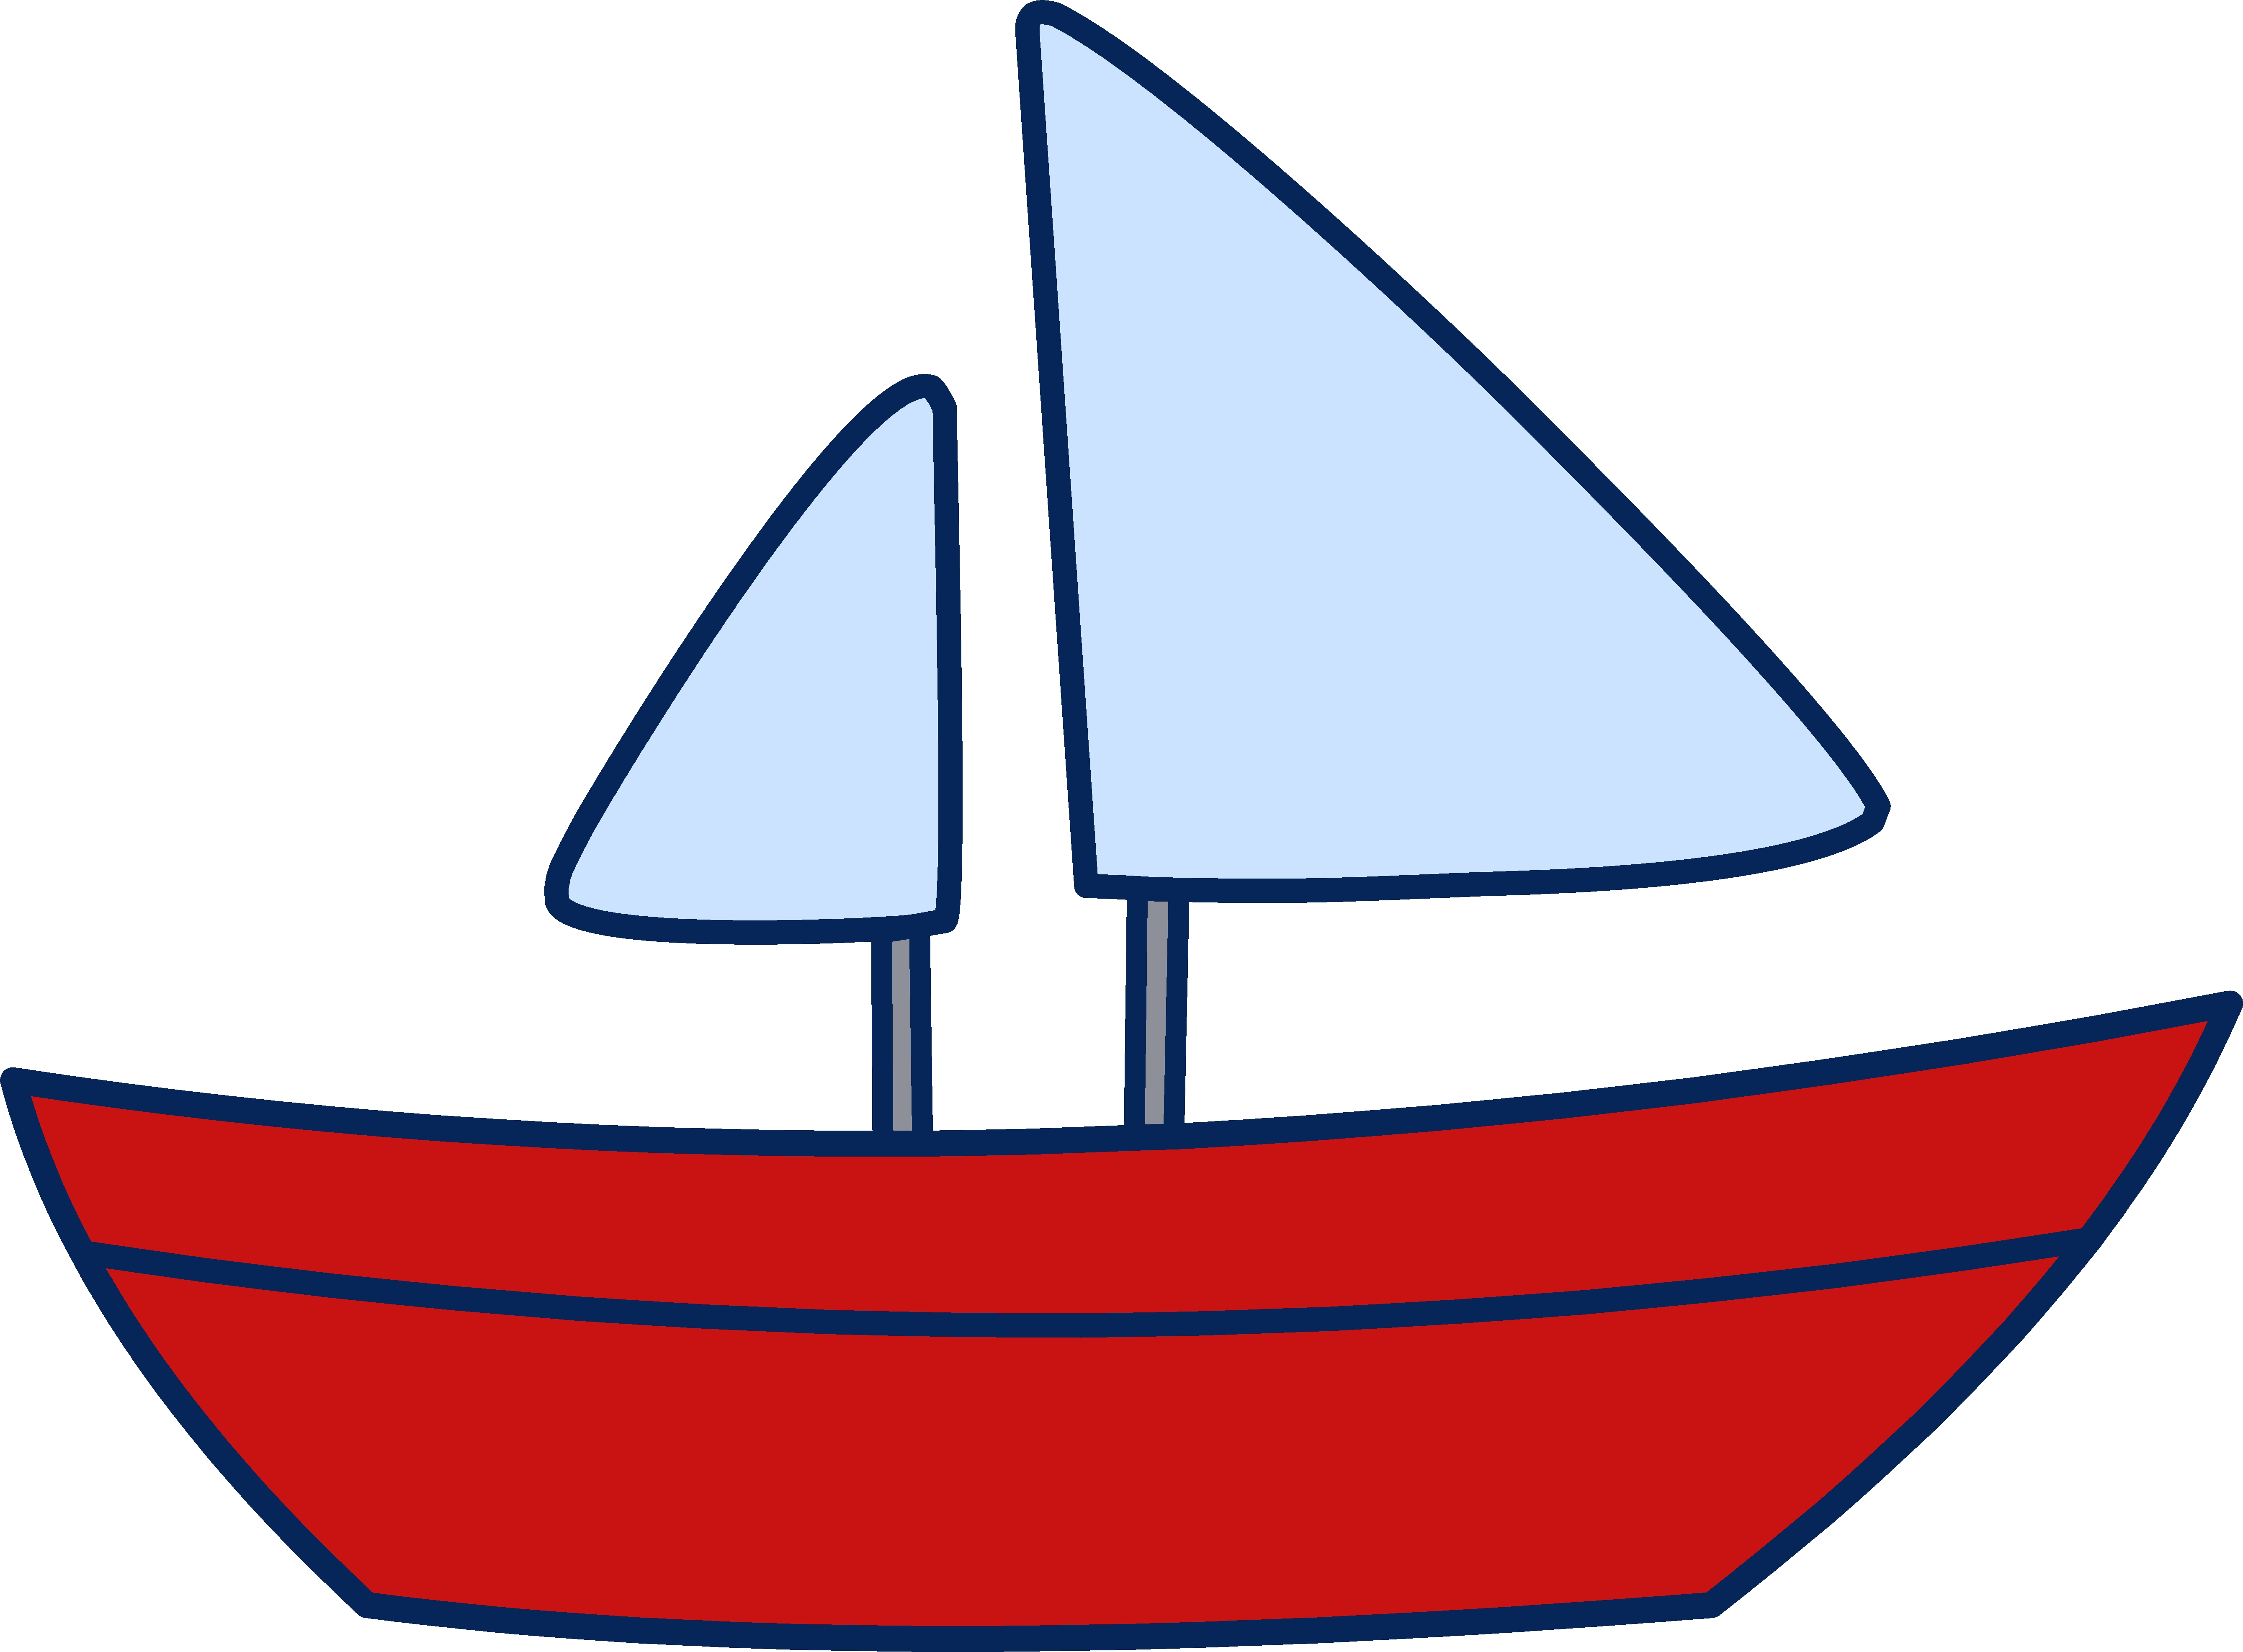 5357x3945 Best Of Boat Clipart Design